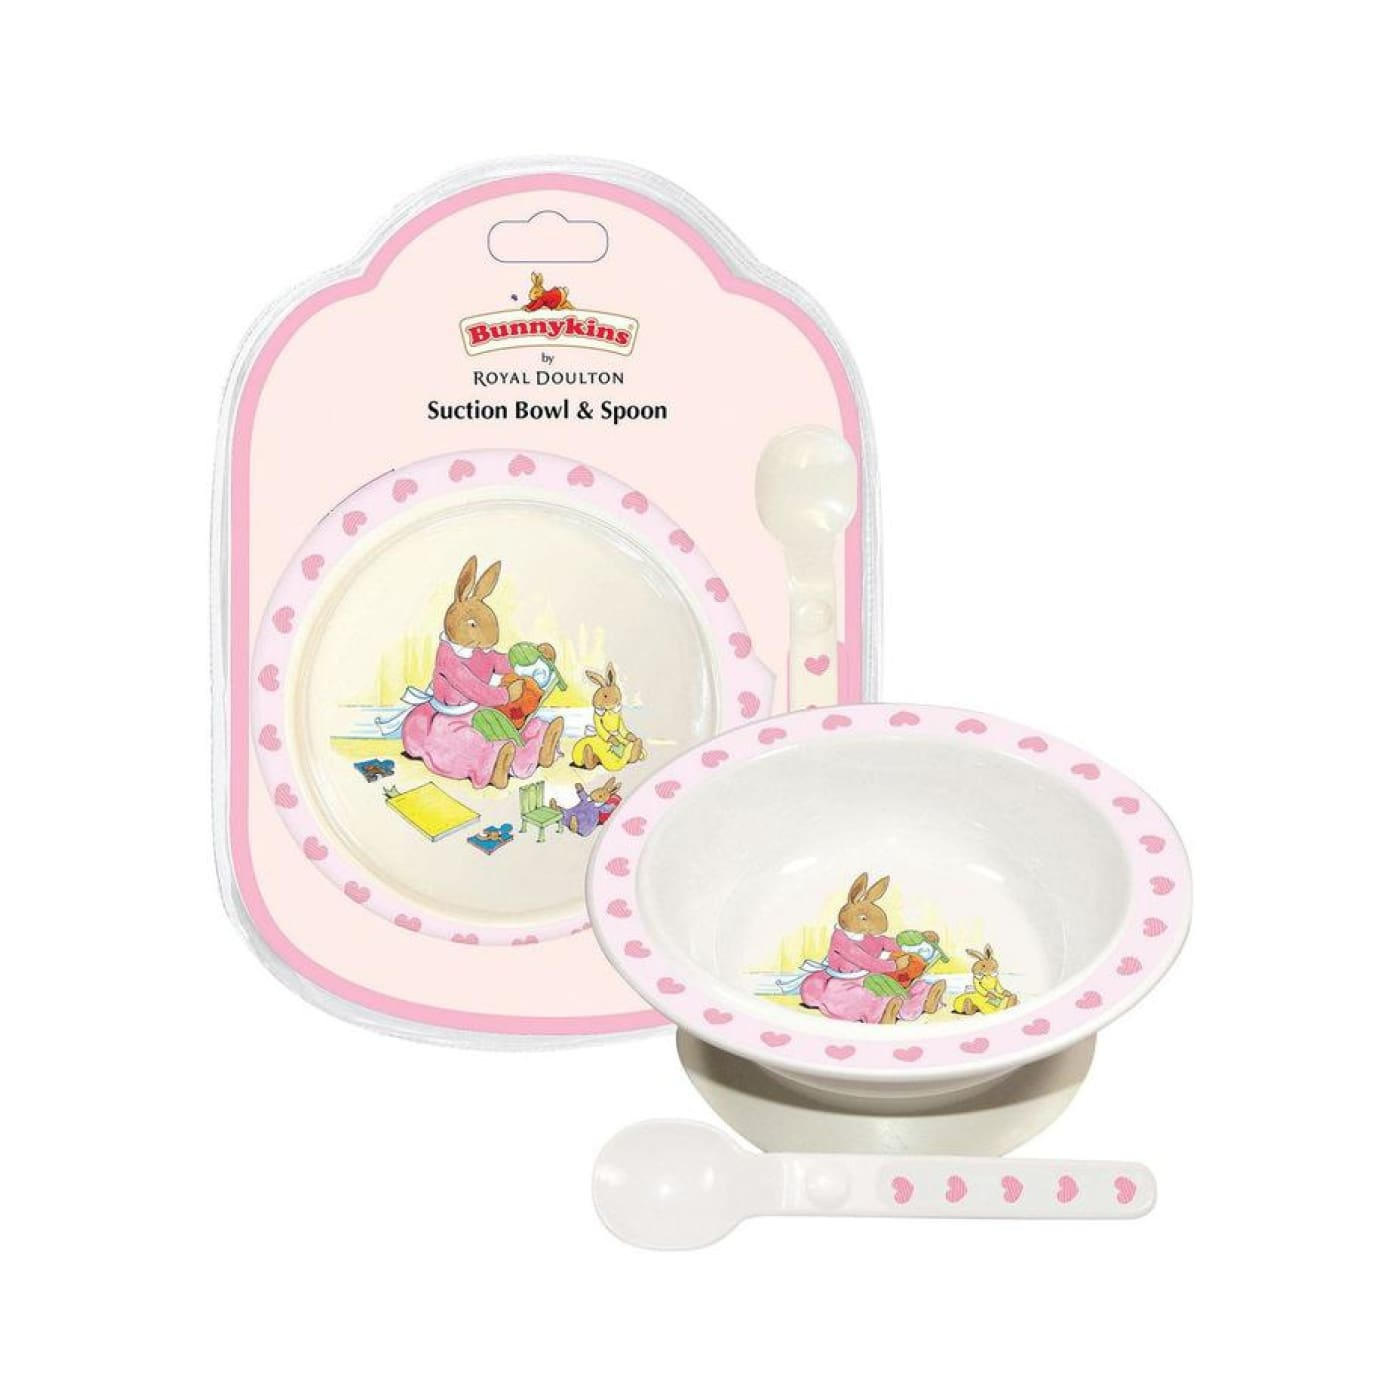 Bunnykins Suction Bowl & Spoon - Pink Hearts - NURSING & FEEDING - CUTLERY/PLATES/BOWLS/TOYS